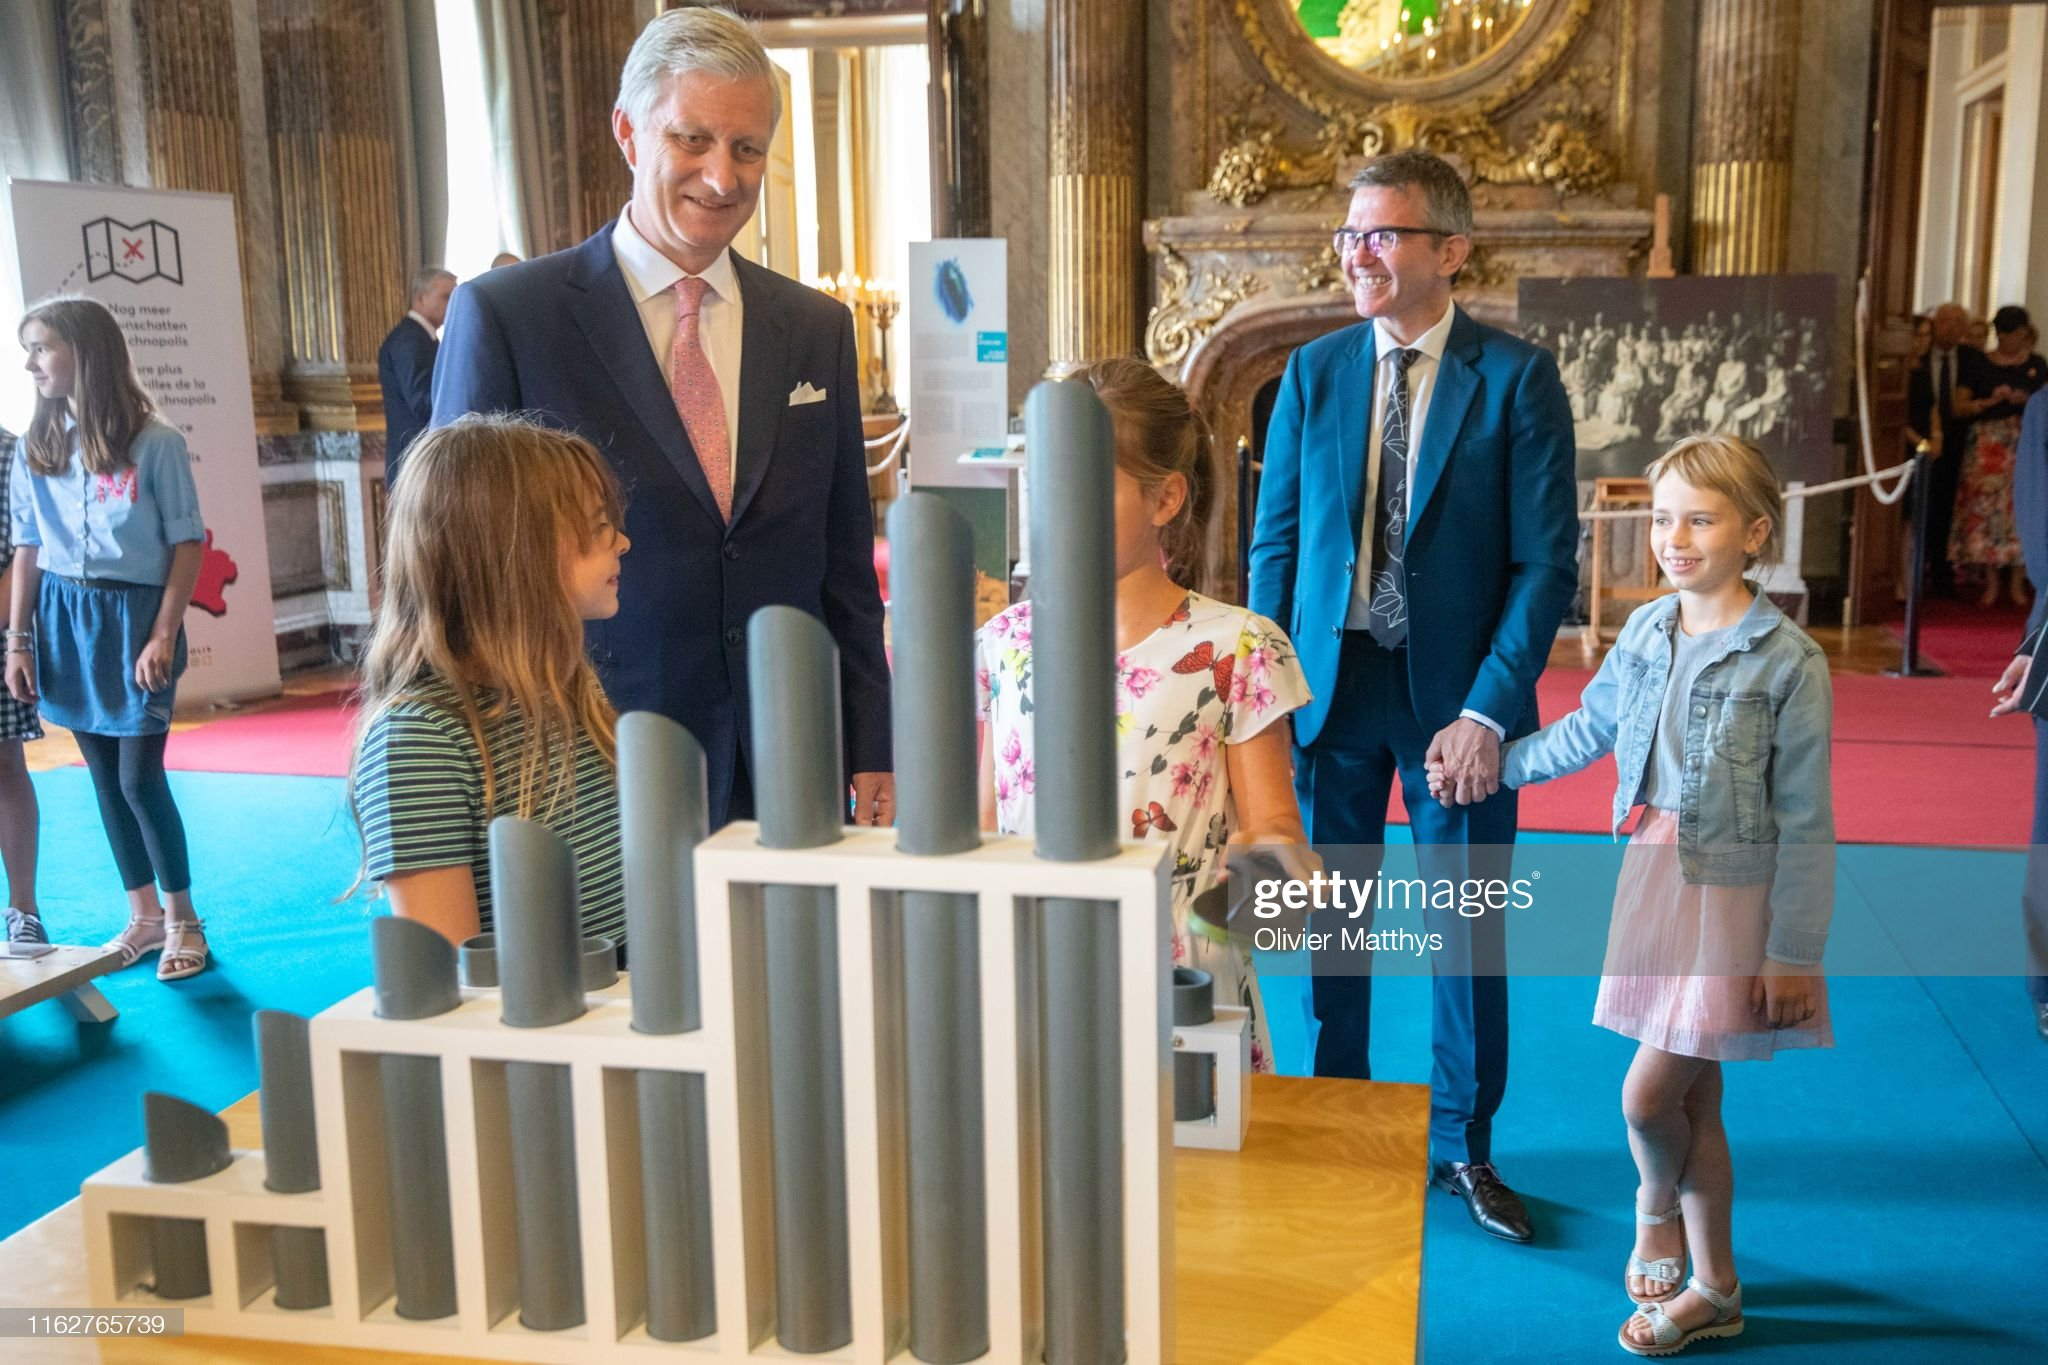 CASA REAL BELGA - Página 54 King-philippe-of-belgium-attends-the-technopolis-section-of-the-at-picture-id1162765739?s=2048x2048